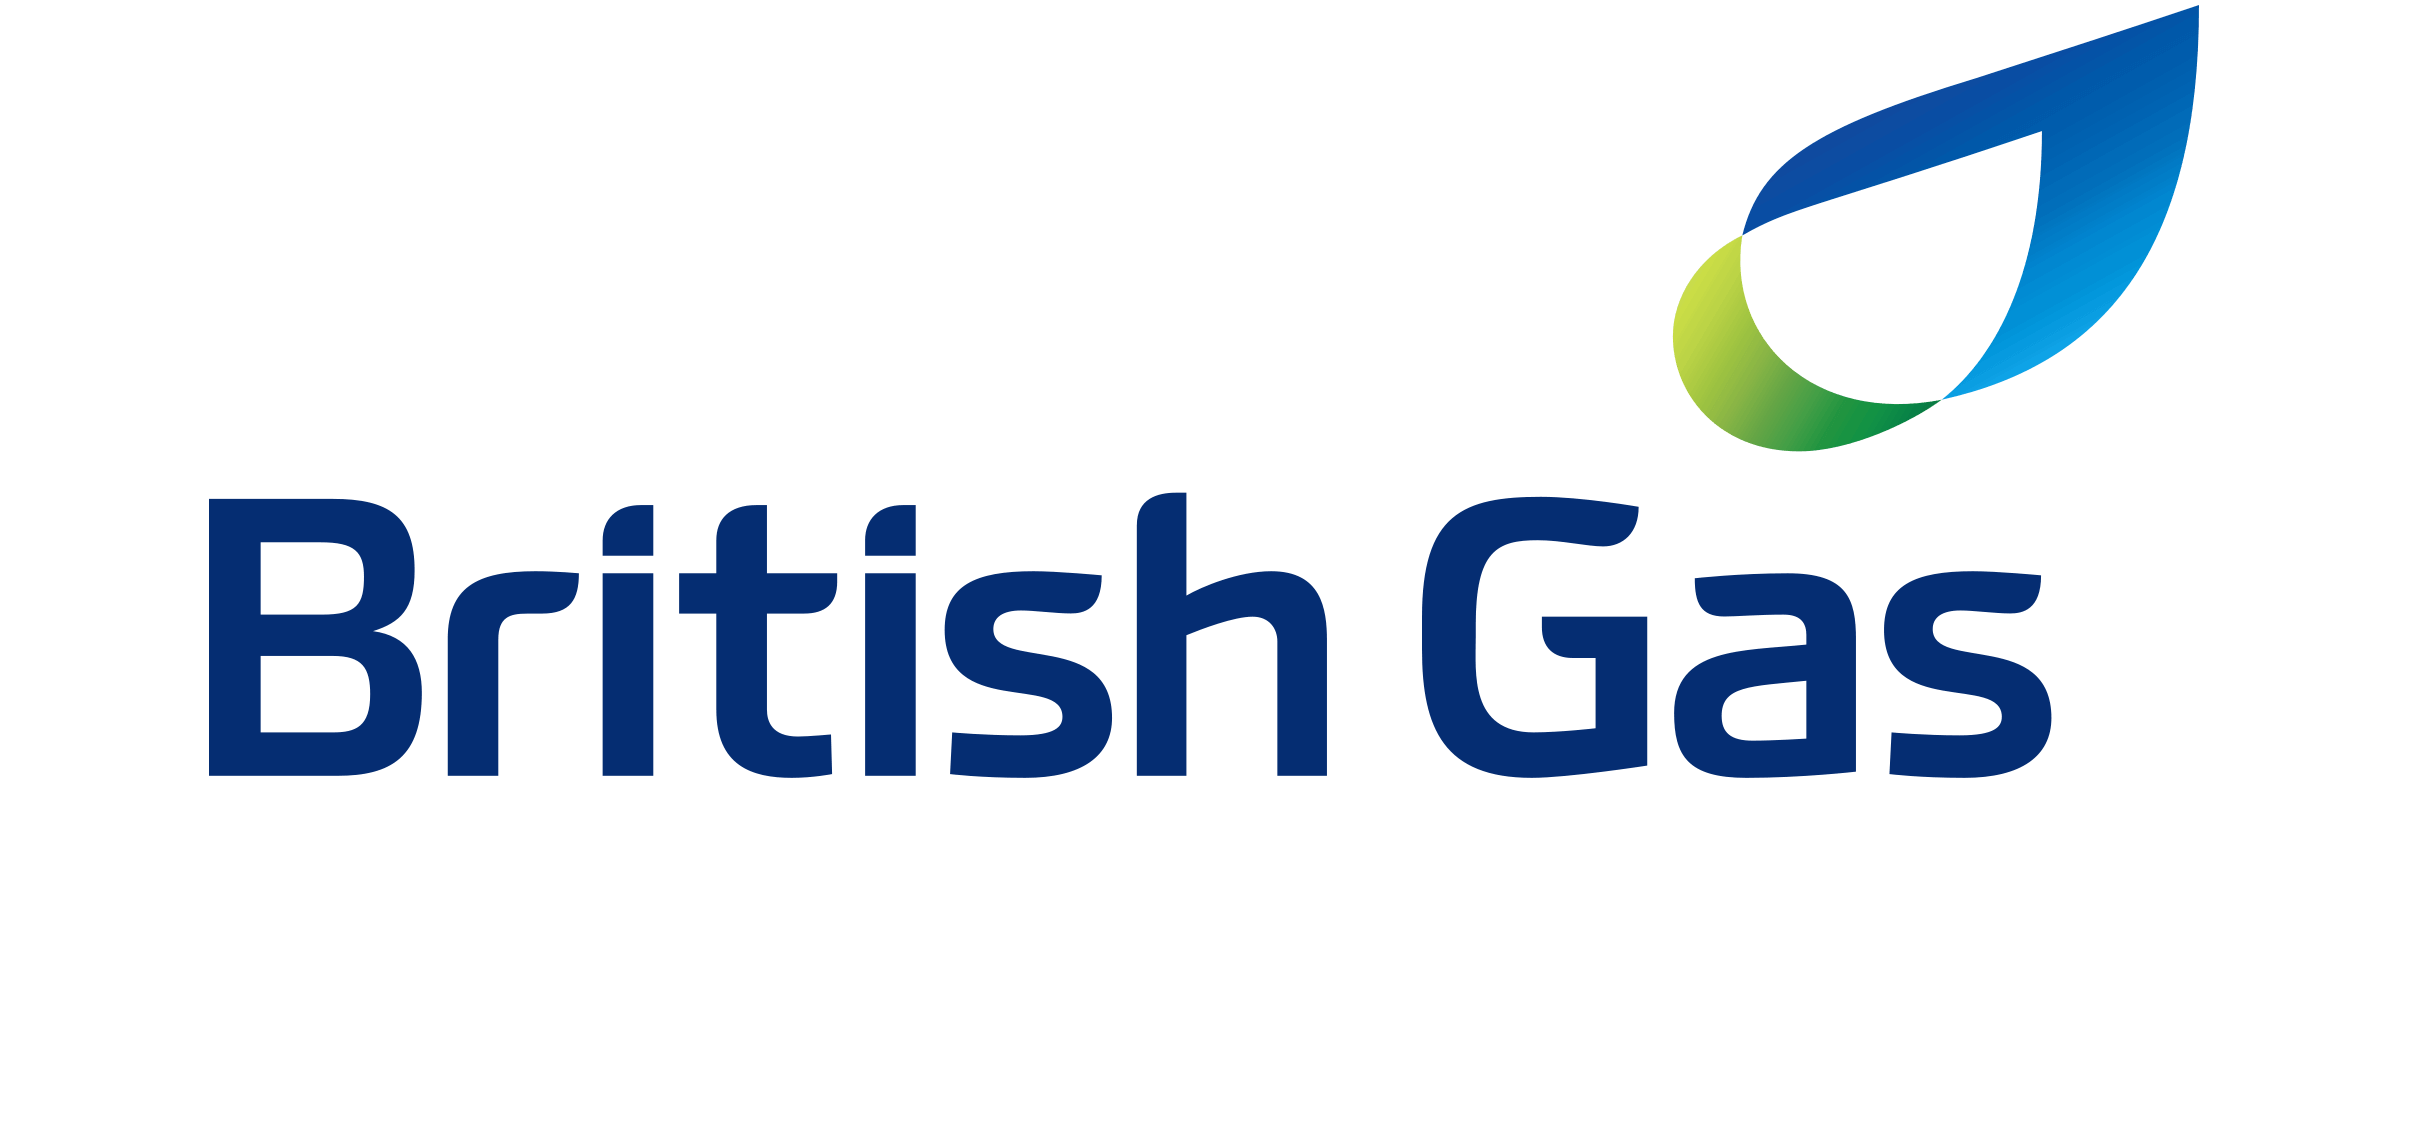 An image of British Gas's logo